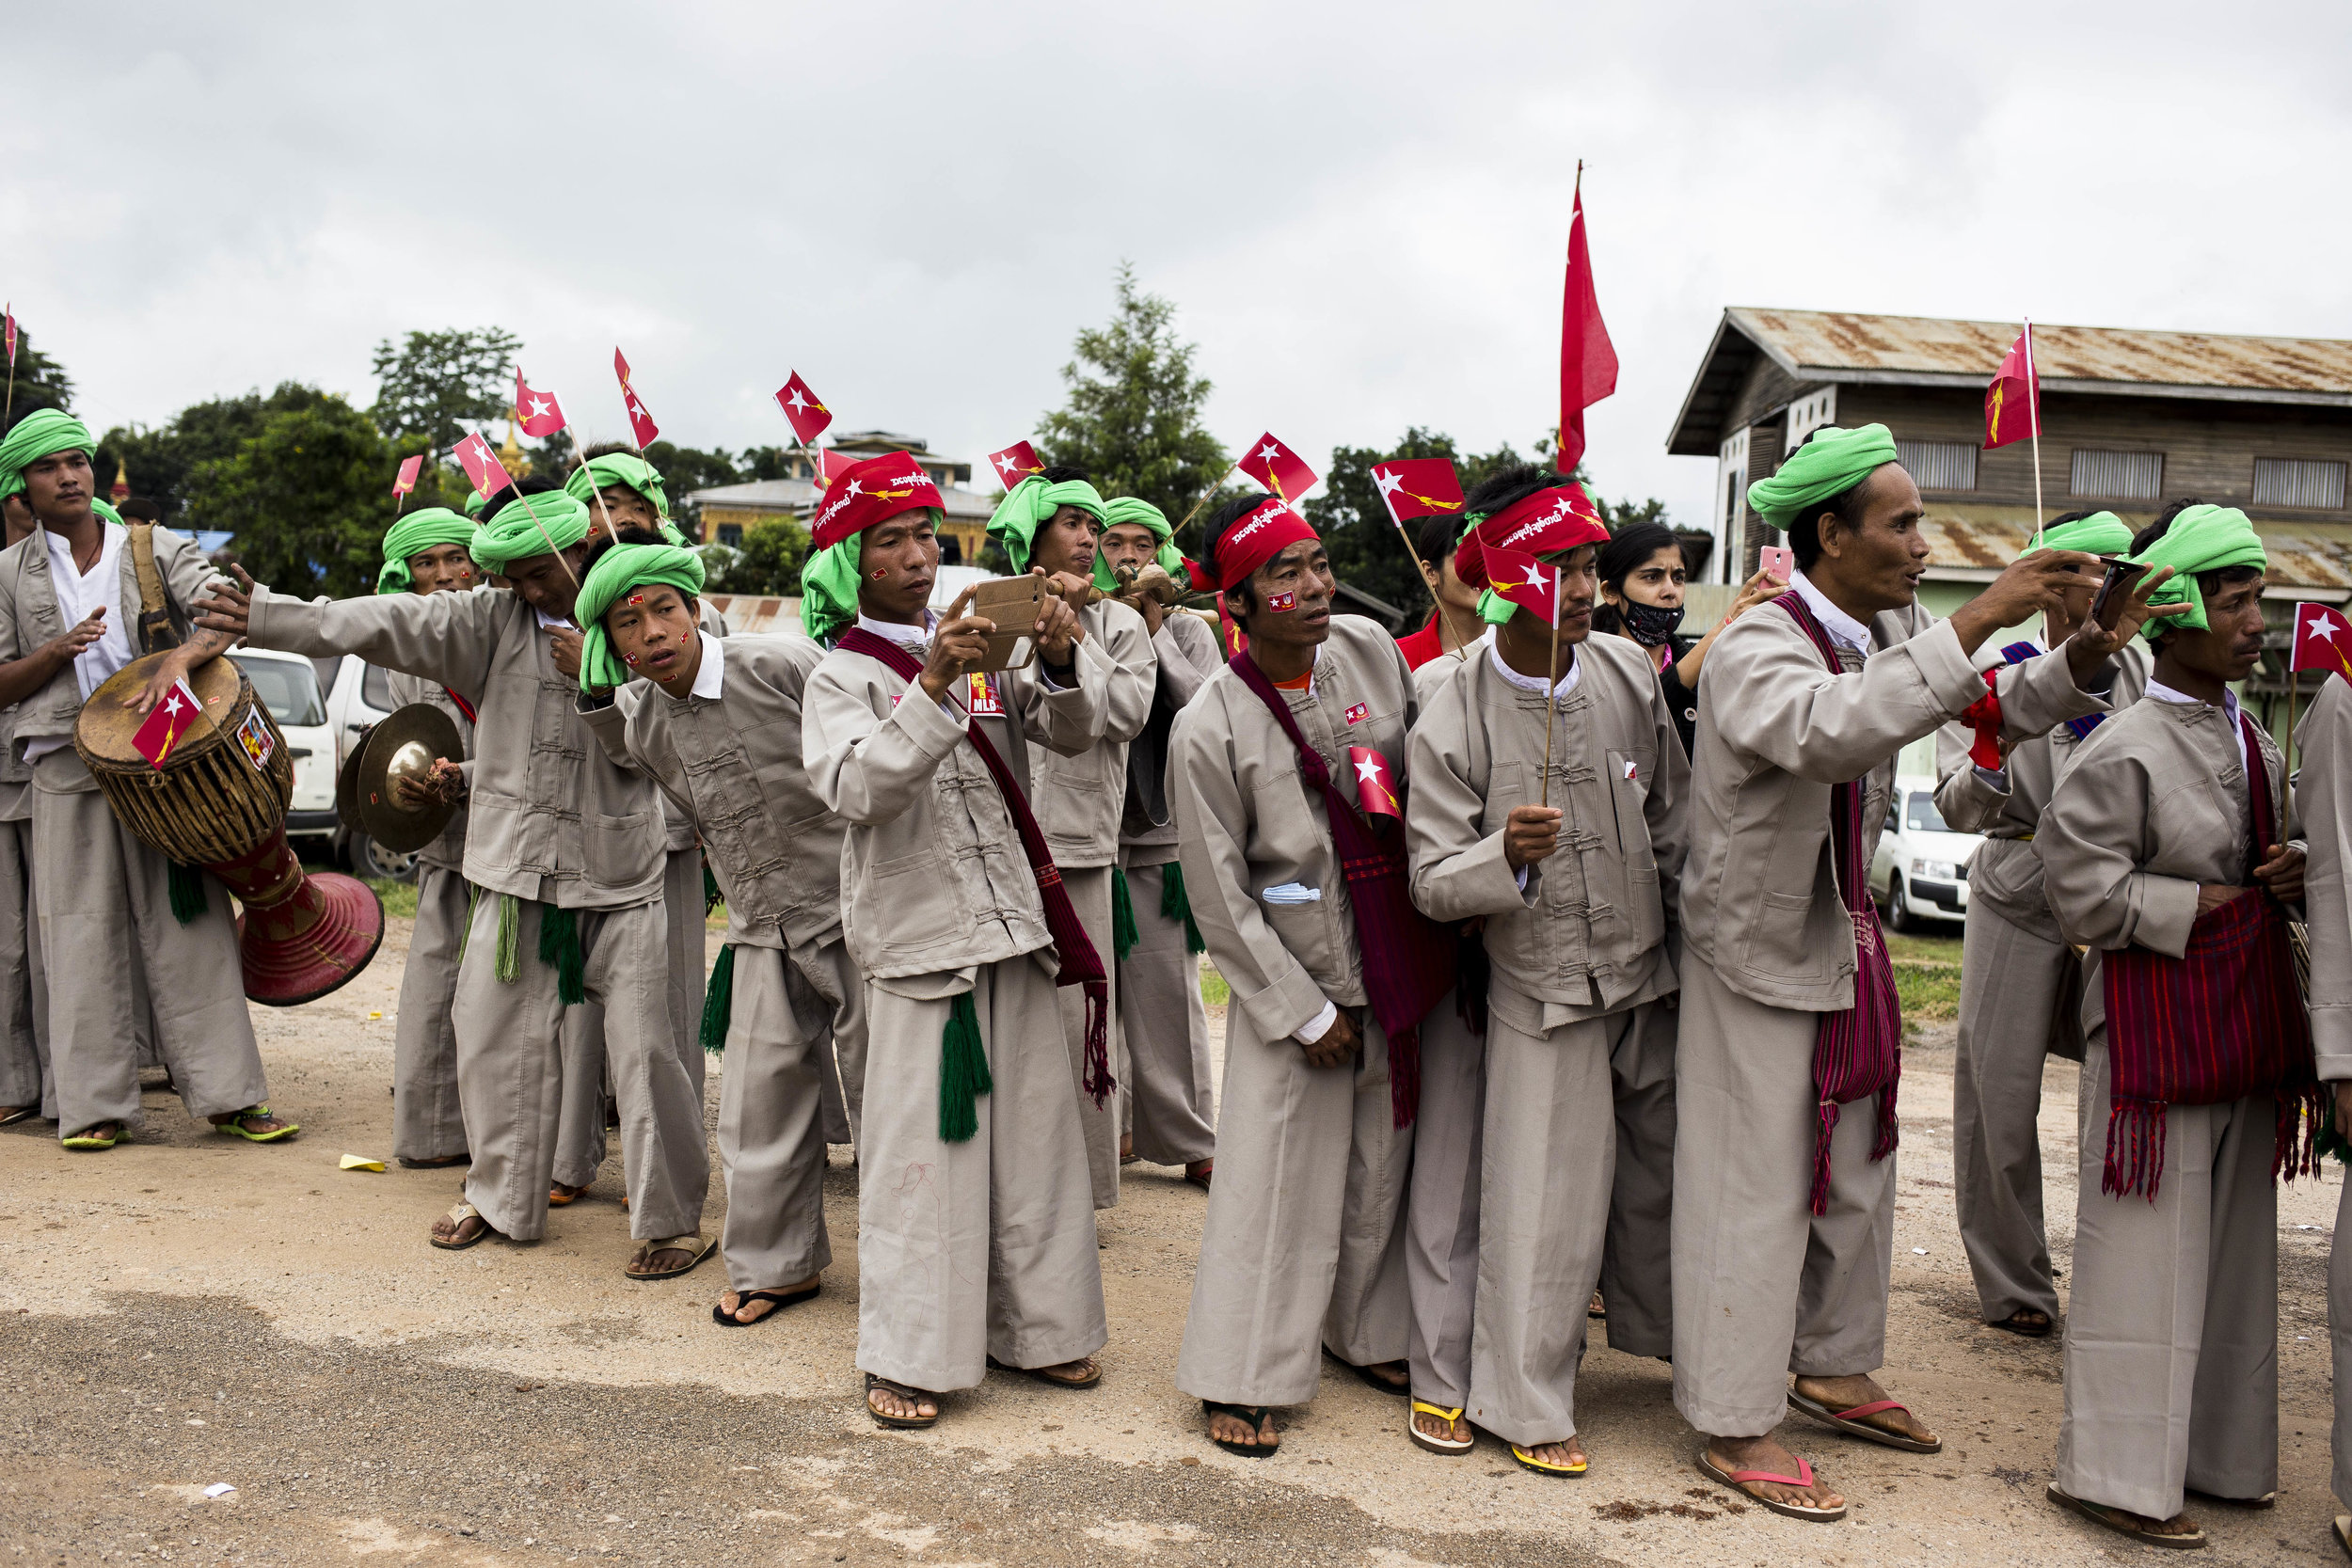 NLD leader Daw Aung Shan Suu Kyi visiting Hopong township in Shan State on September 6, 2015.Photo by Ann Wang